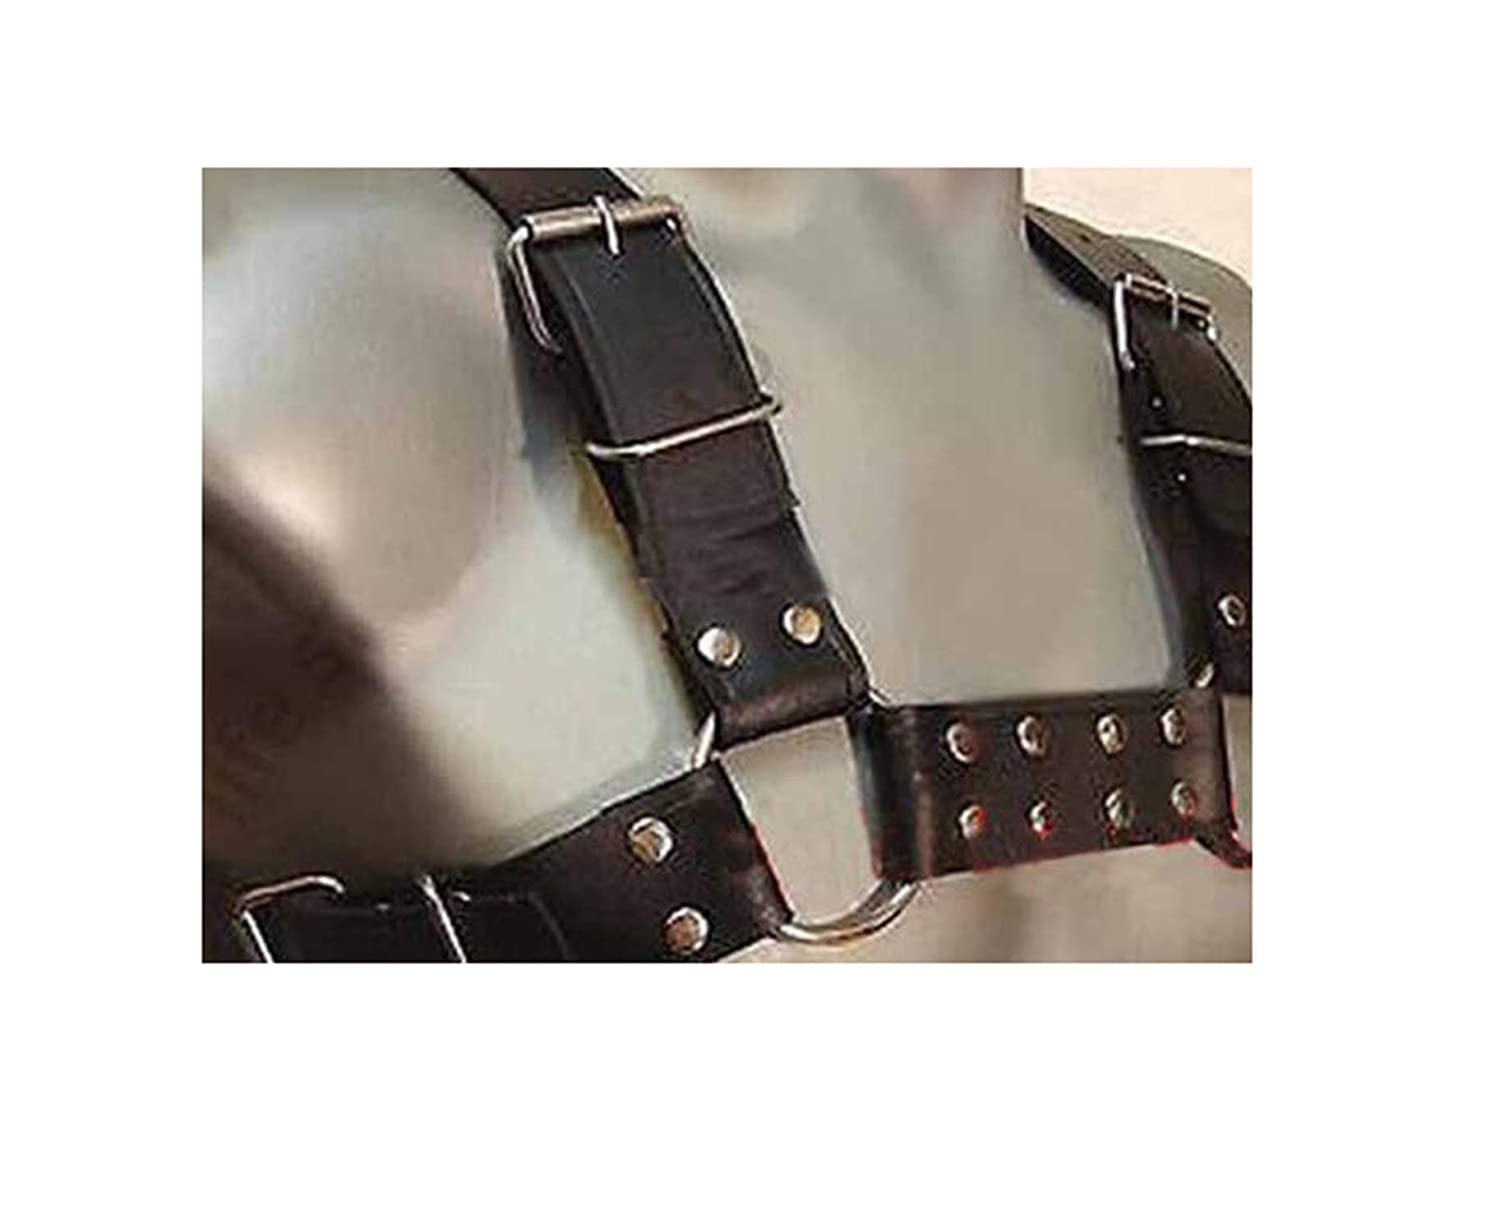 2c85cbab125 Privacy mens bondage leather belt chest harness clubwar gay buckles  harnesses toys for men style e